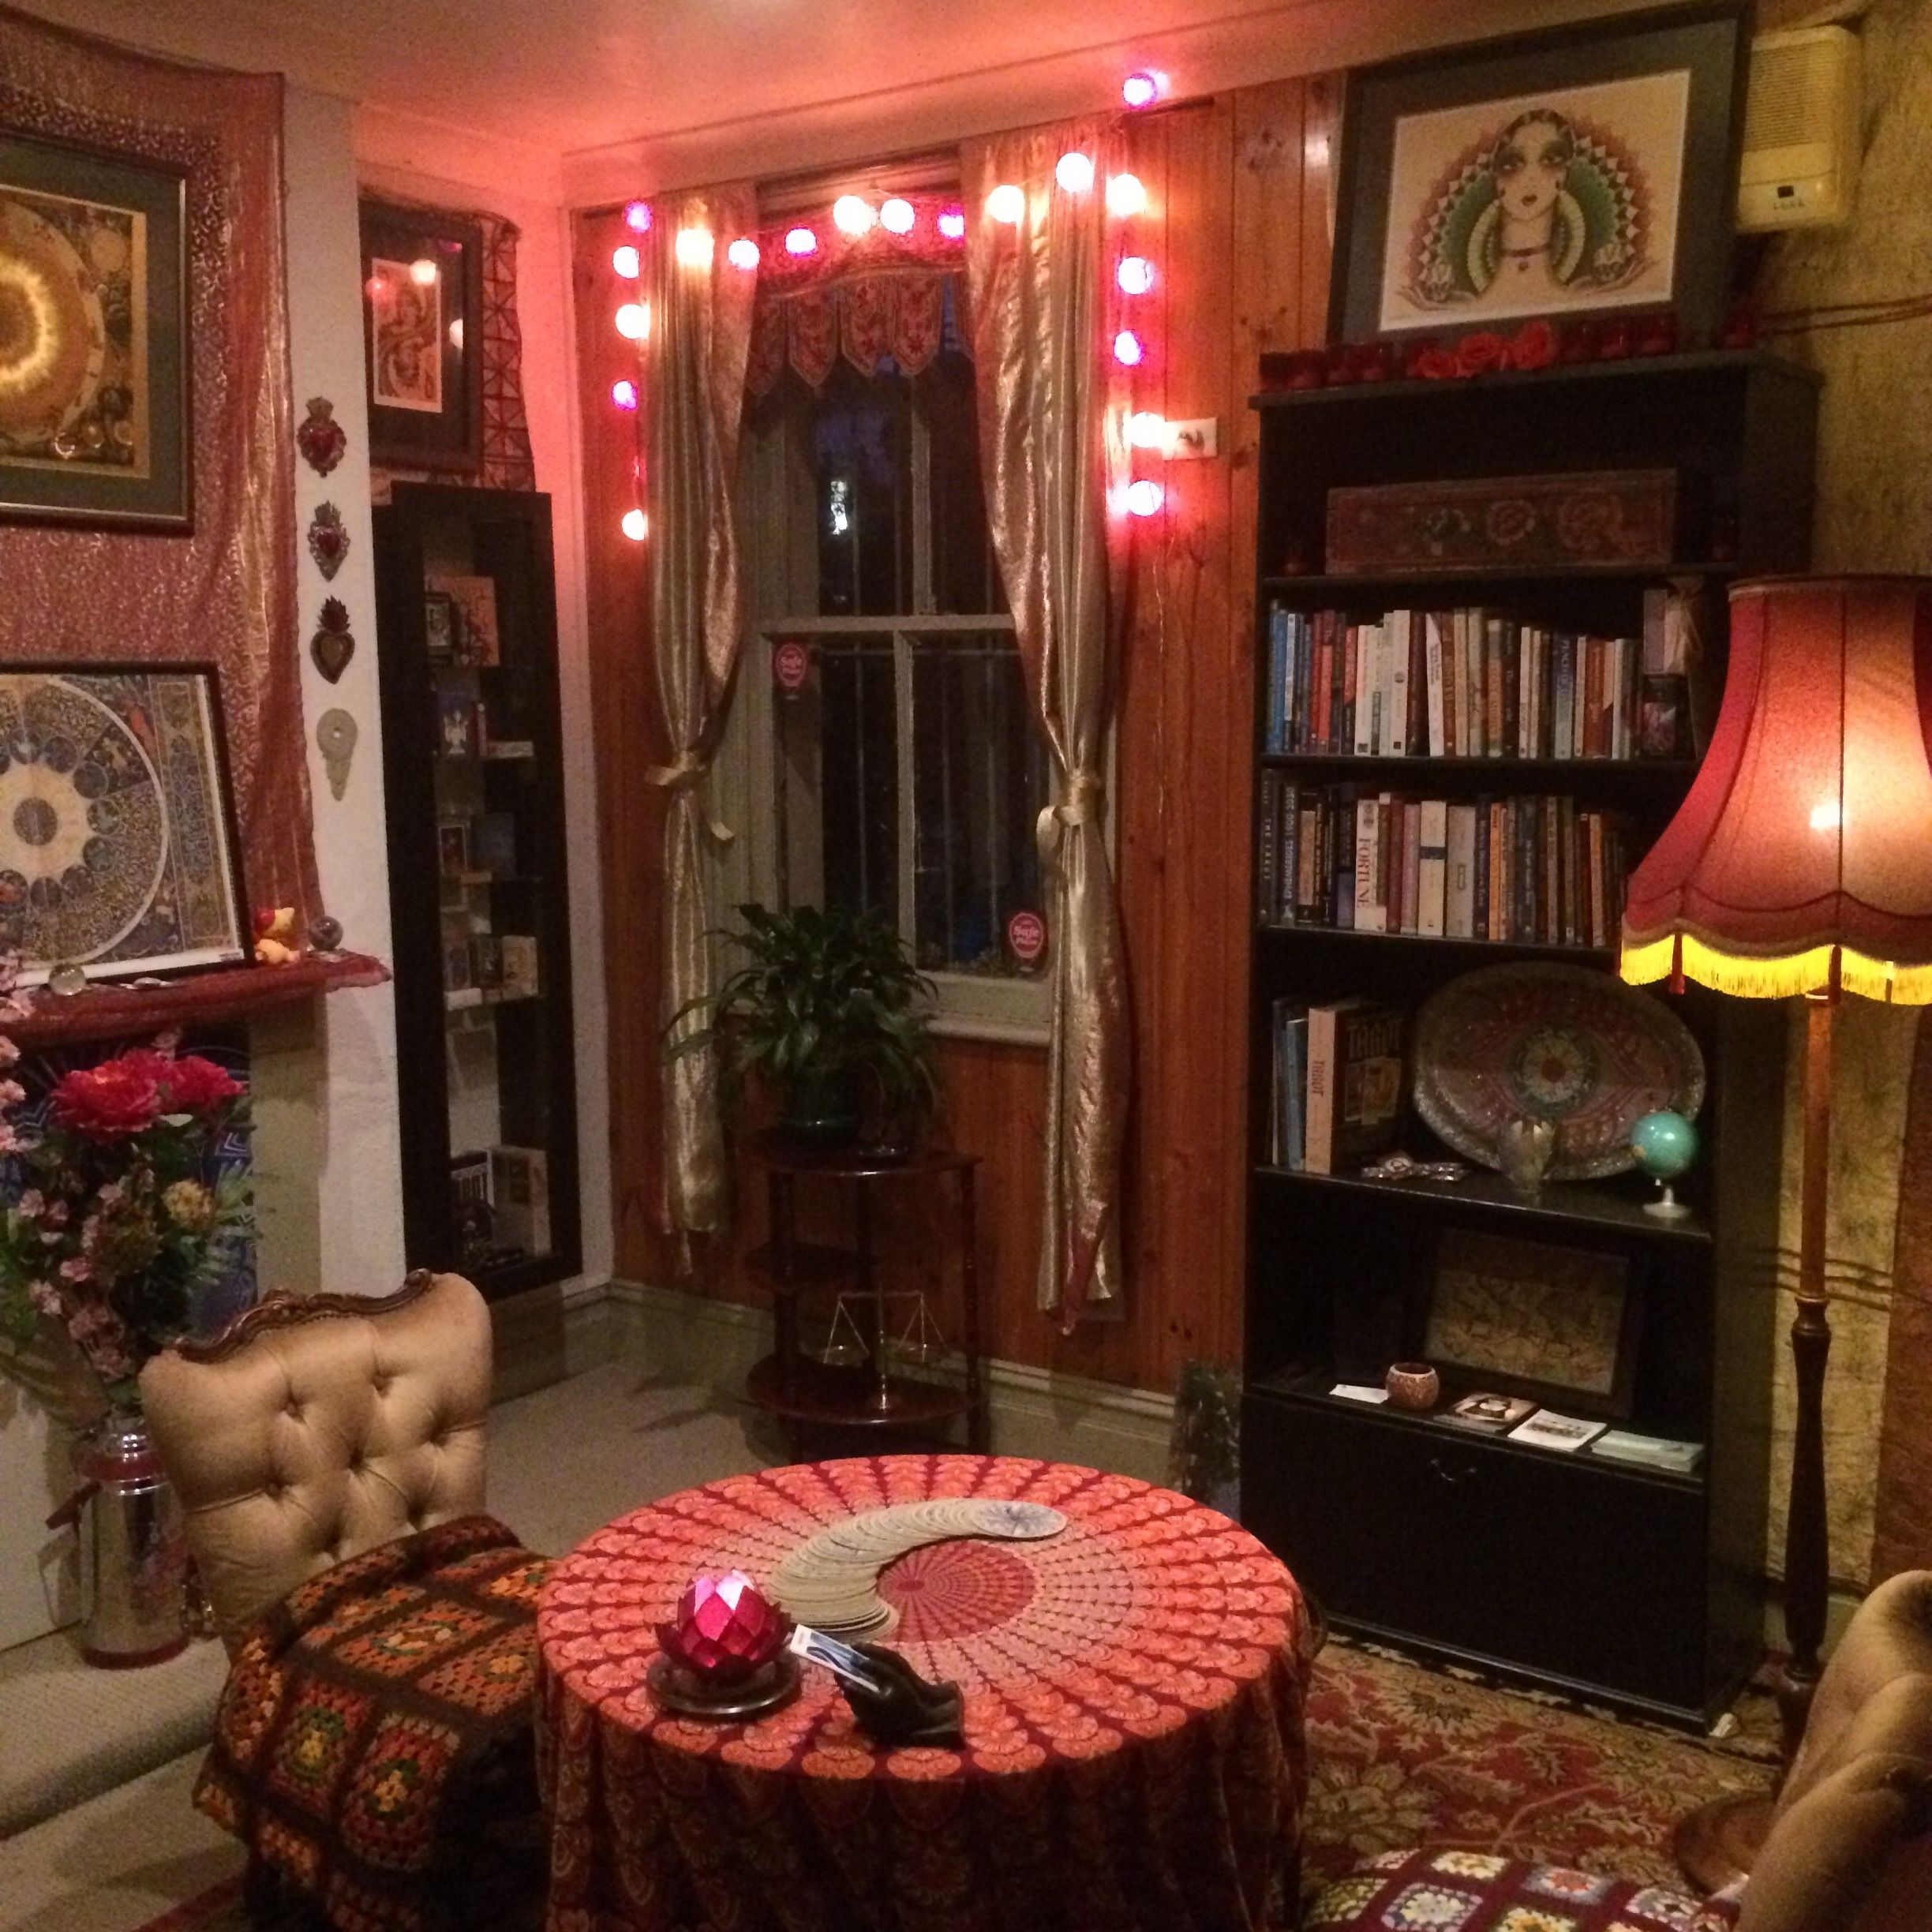 Fortune Tellers Room Halloween Decoration Idea Haunted Dollhouse